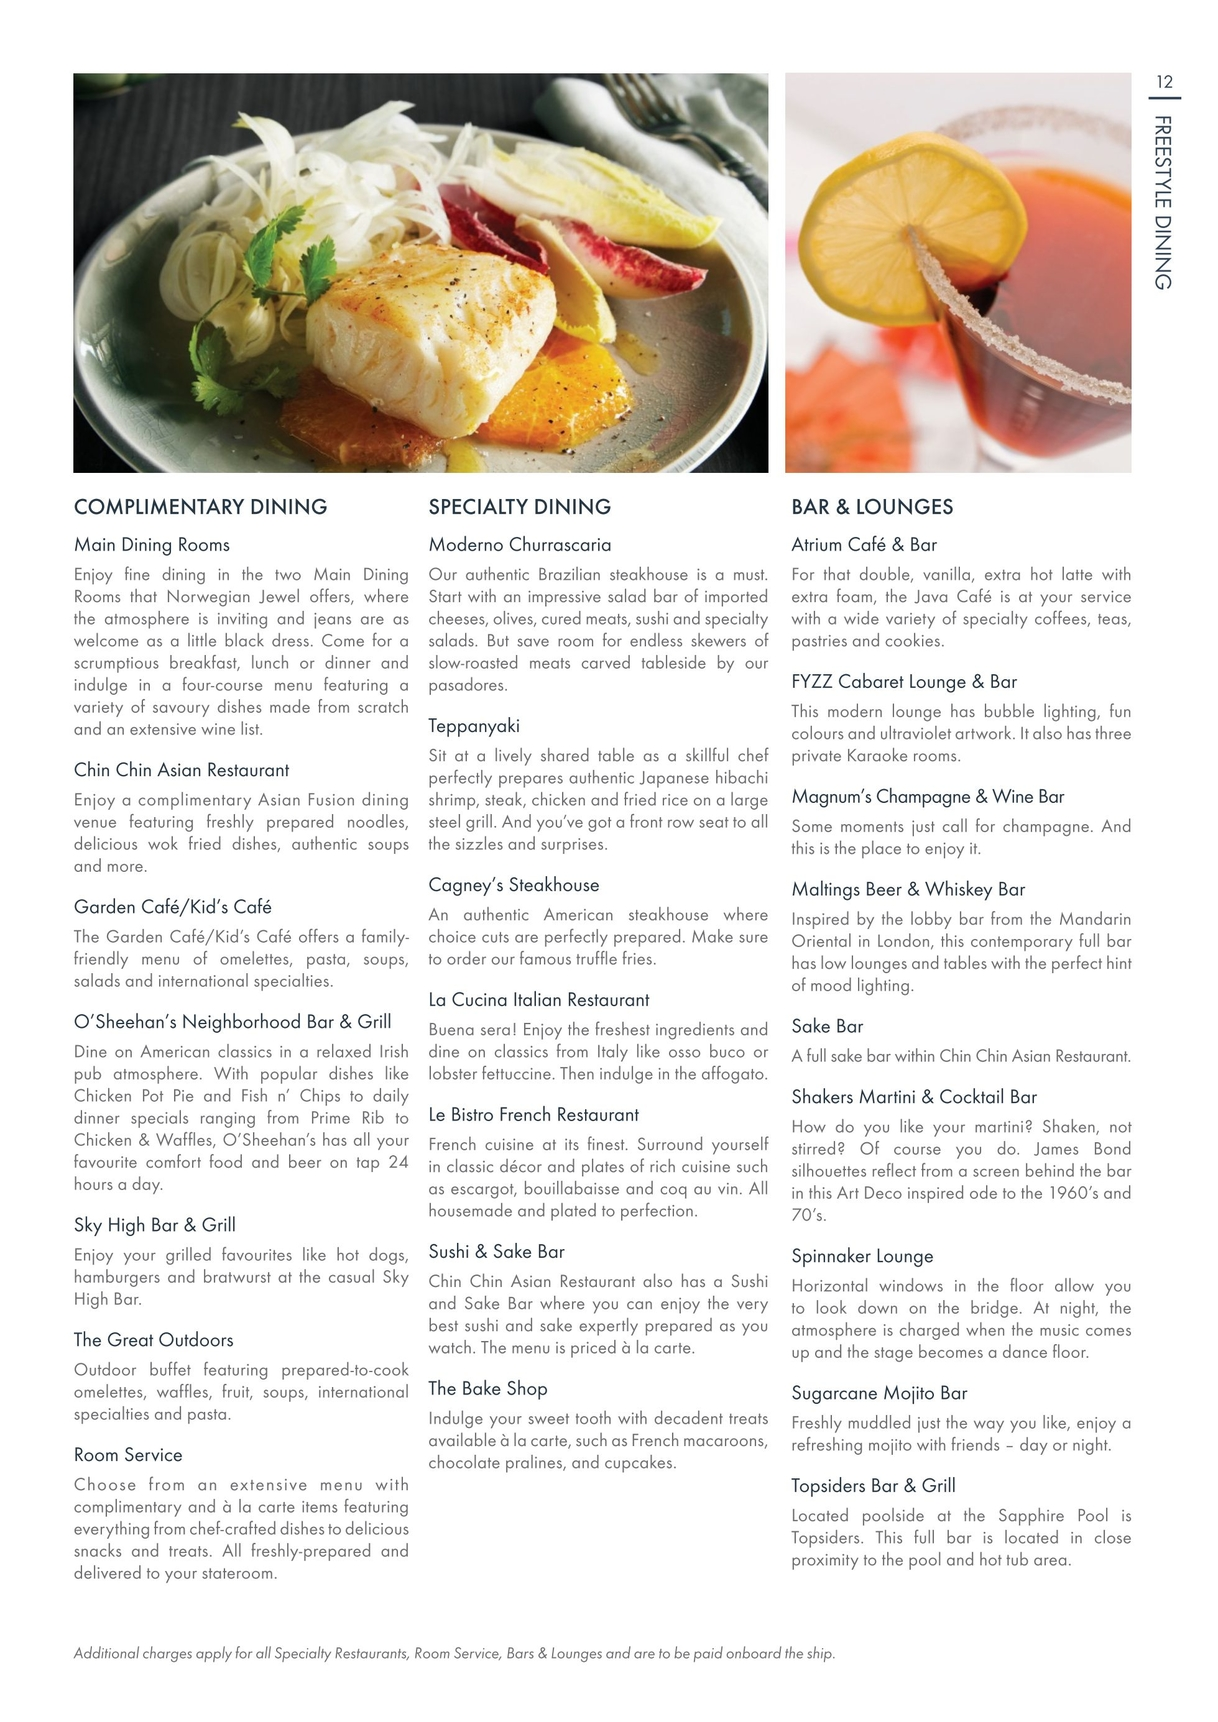 Norwegian Jewel La Cucina Menu Norwegian Jewel 2018 19 Australia New Zealand Asia And South